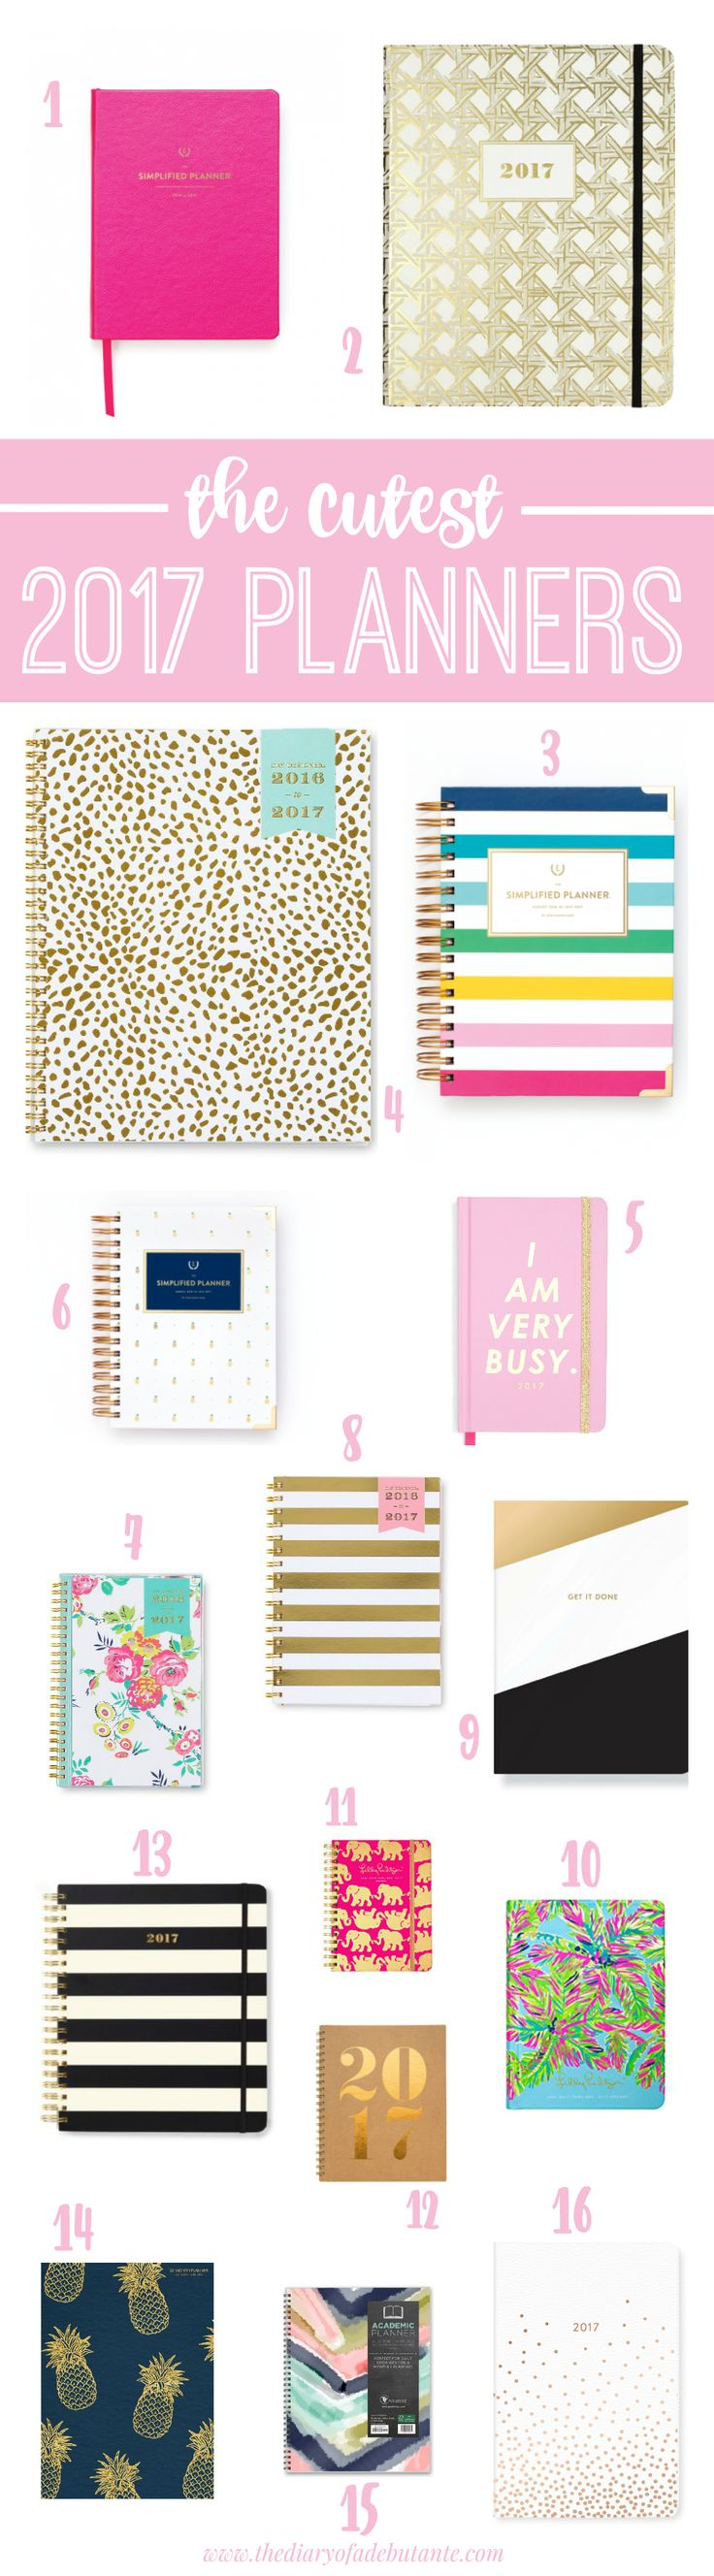 Plan for success in the New Year with one of these adorable 2017 planners! Whether it's a Christmas gift idea for yourself or for a loved one who's finishing up the academic school year, everyone loves a reason to better organize their life (socially, academically, and professionally)!